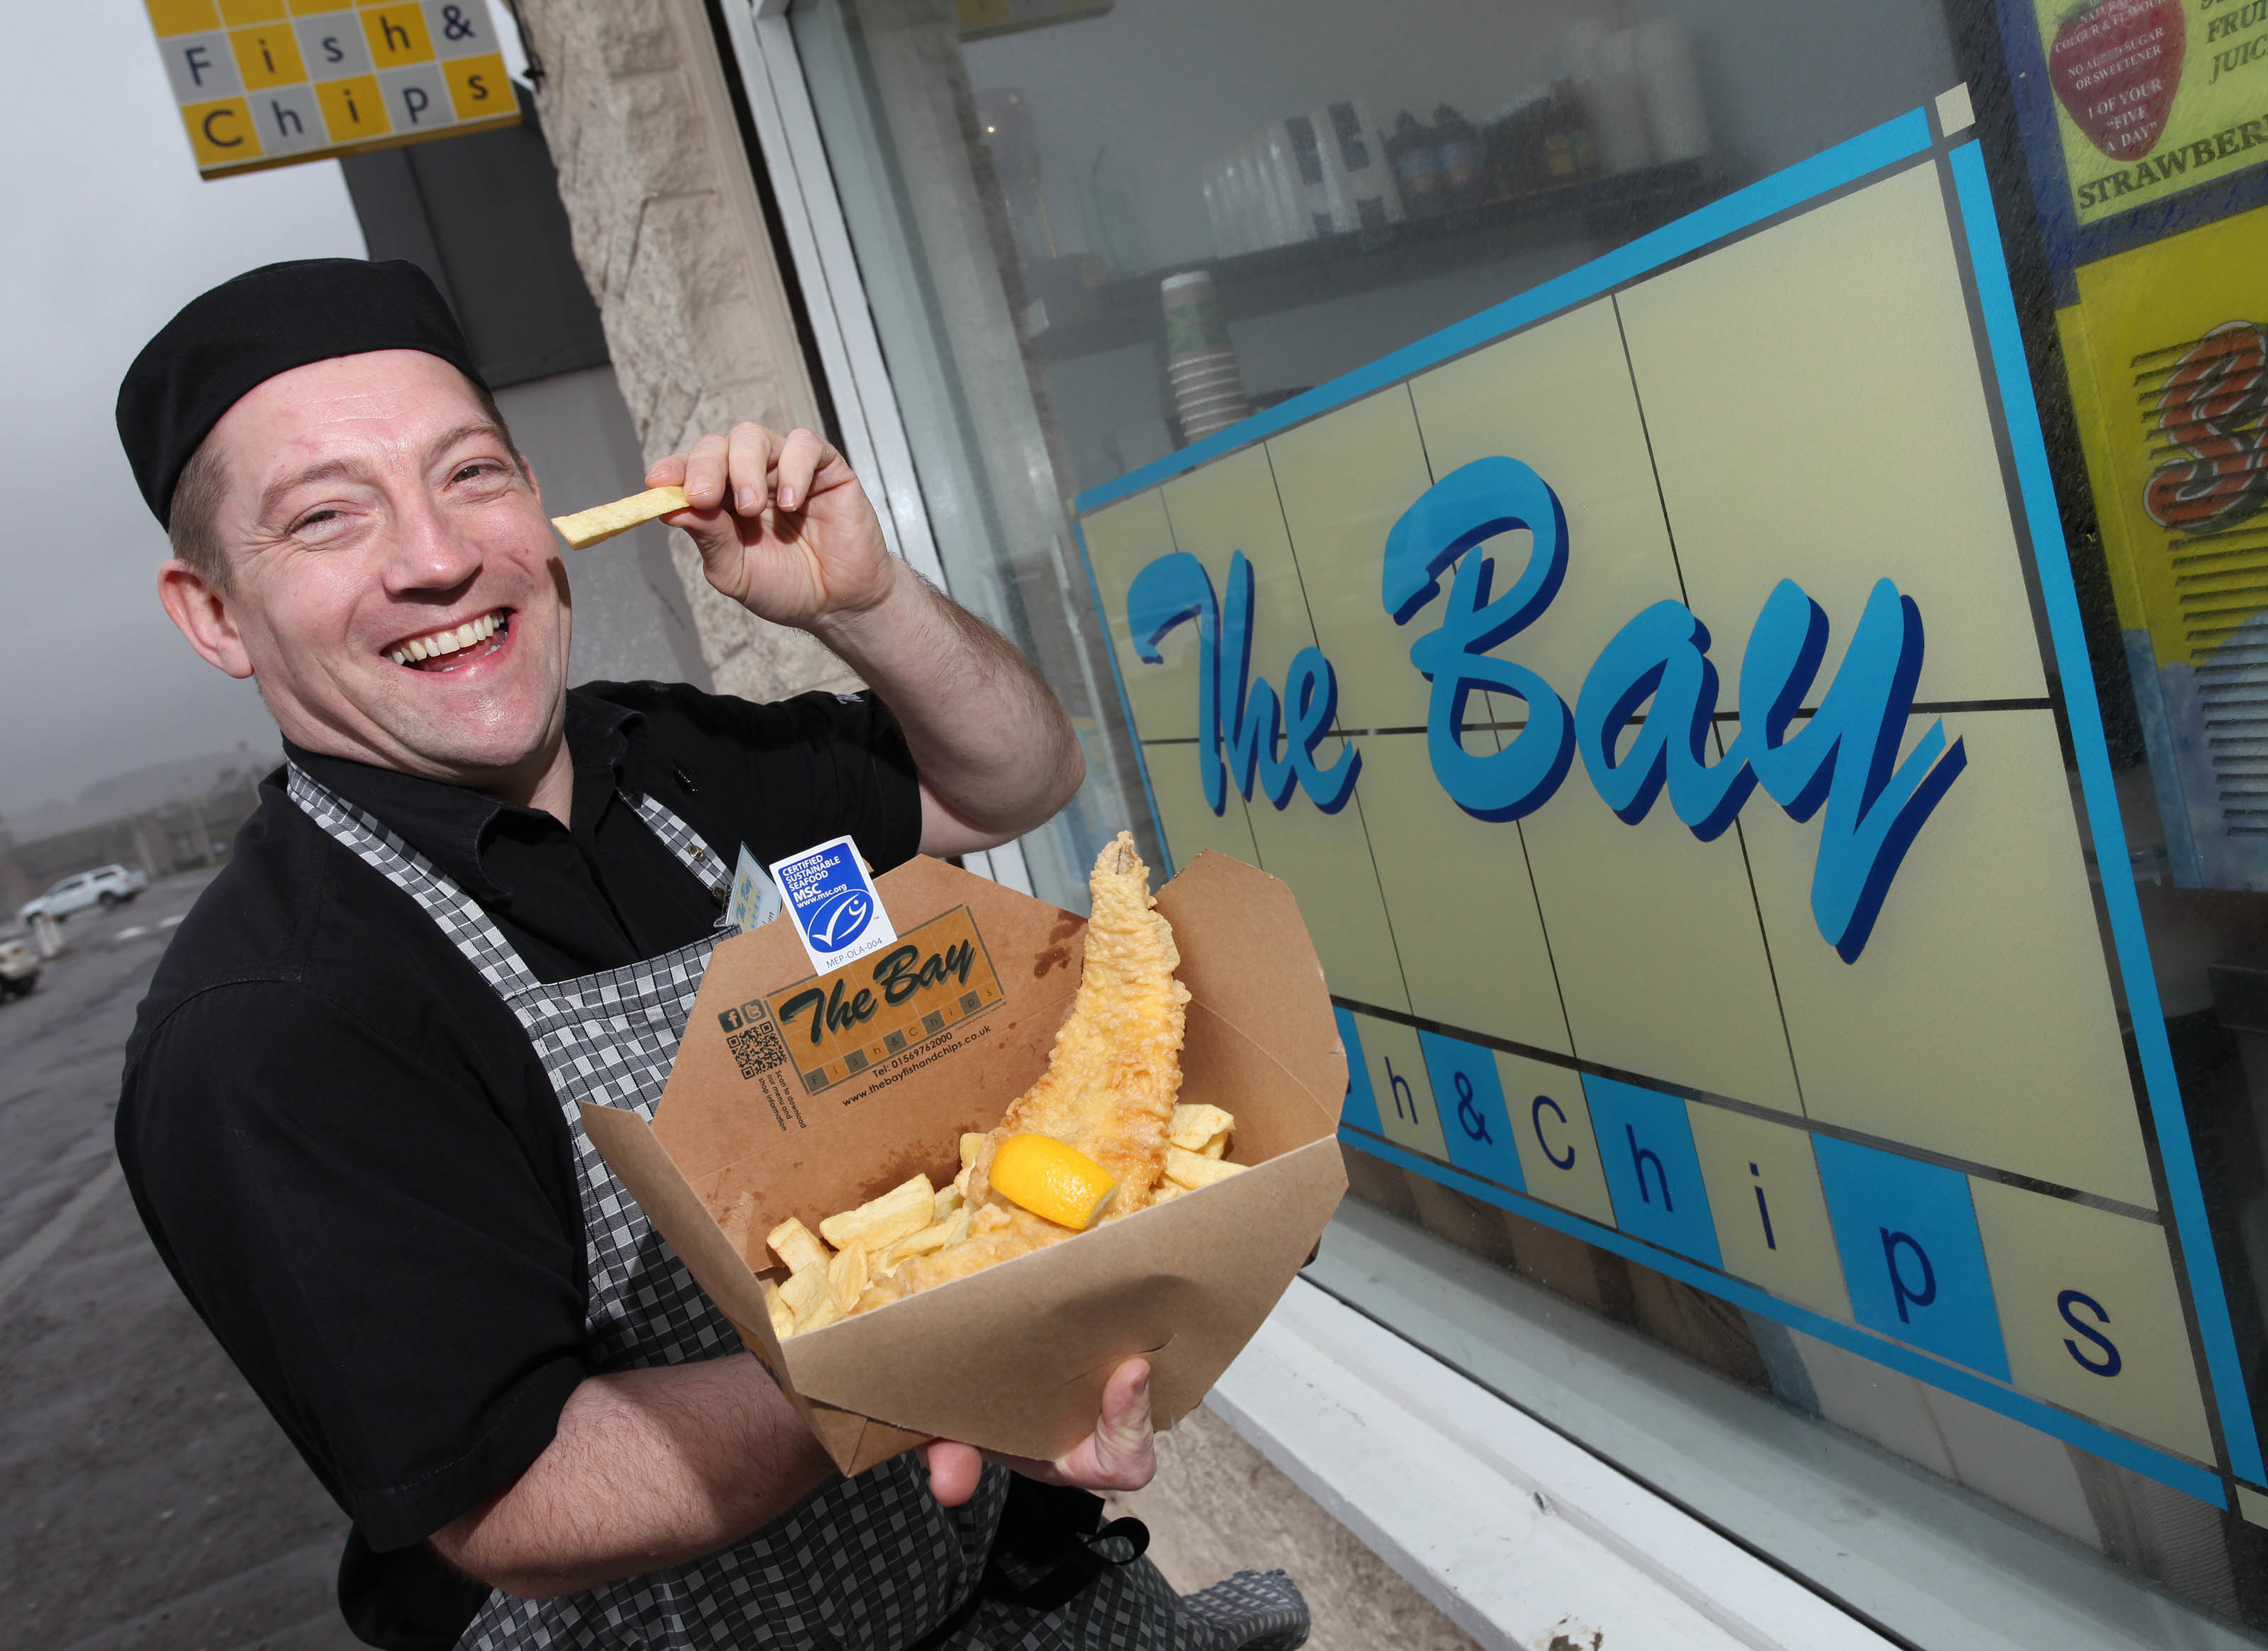 The Bay Fish and Chips owner Calum Richardson.